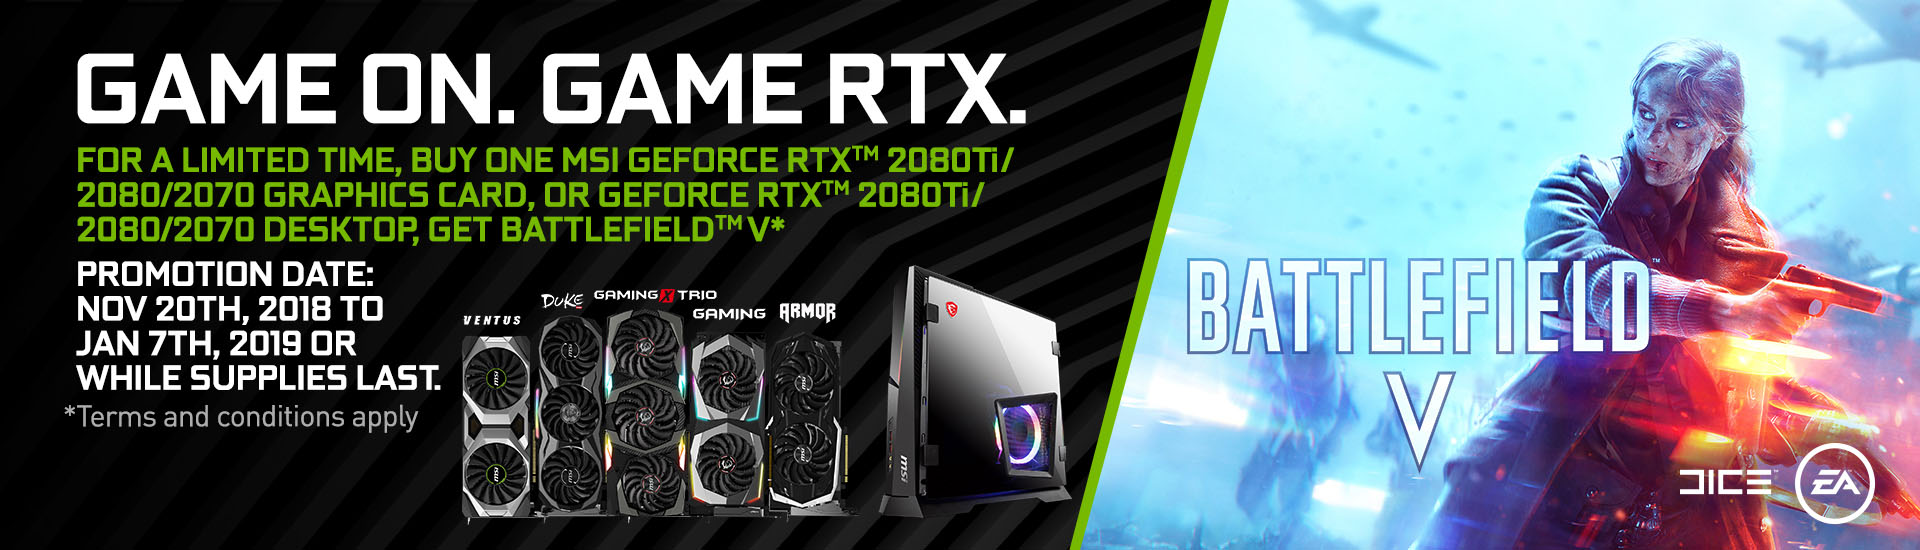 Game on Game RTX